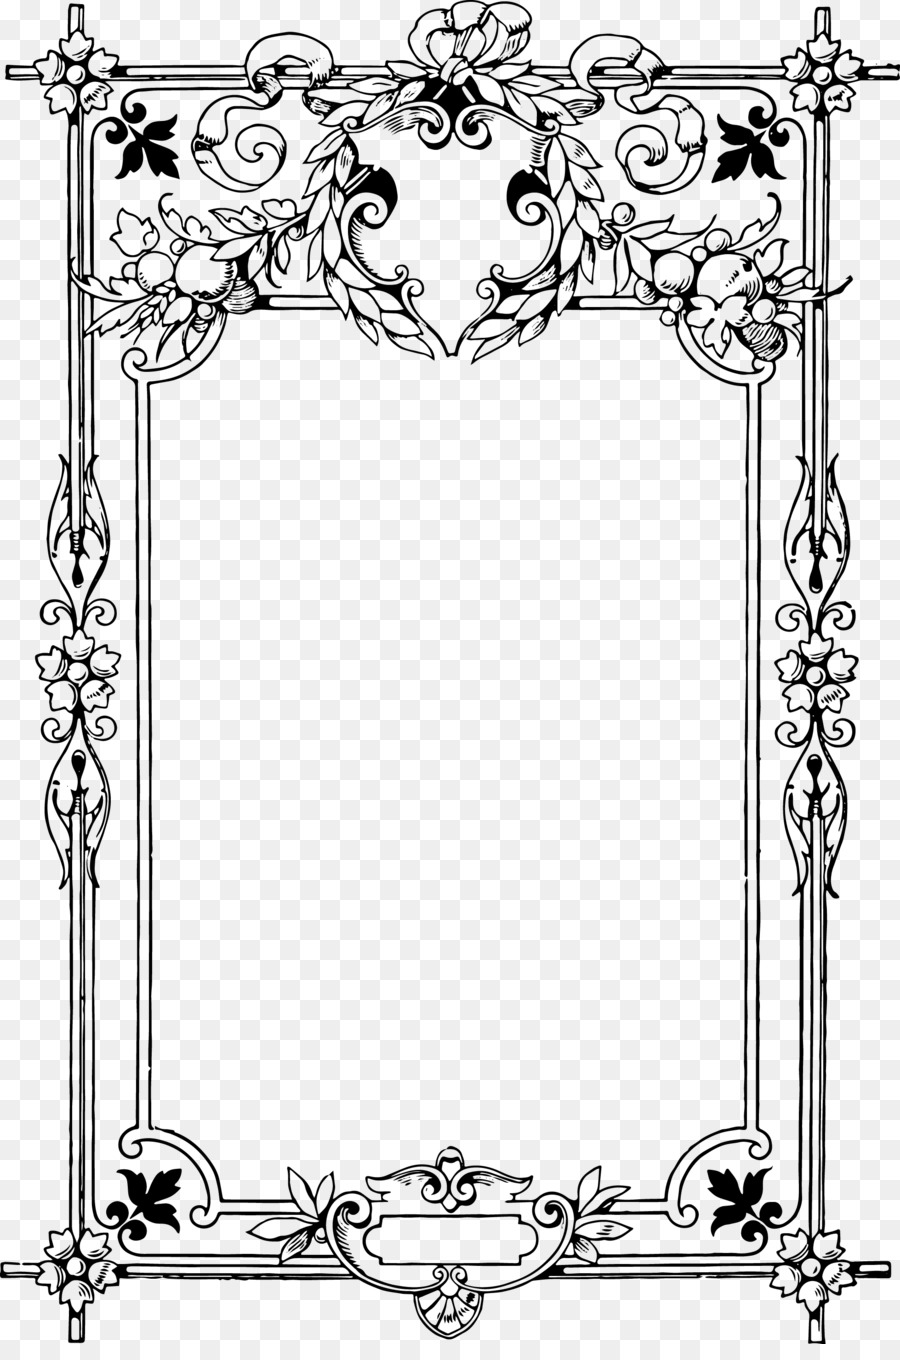 Borders and Frames Coloring book Child Clip art - vintage frame ...